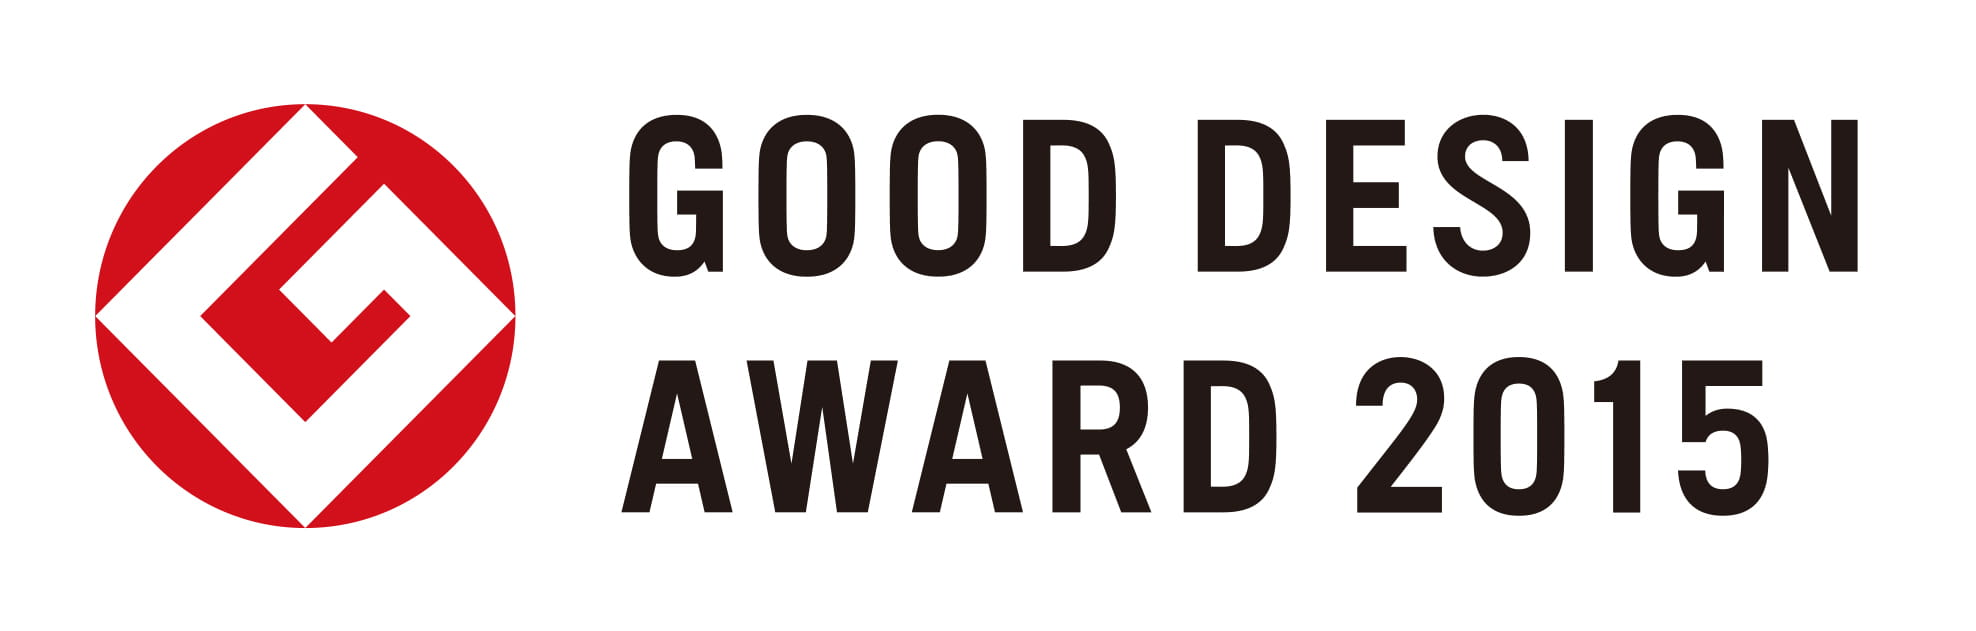 Good Design Award 2015